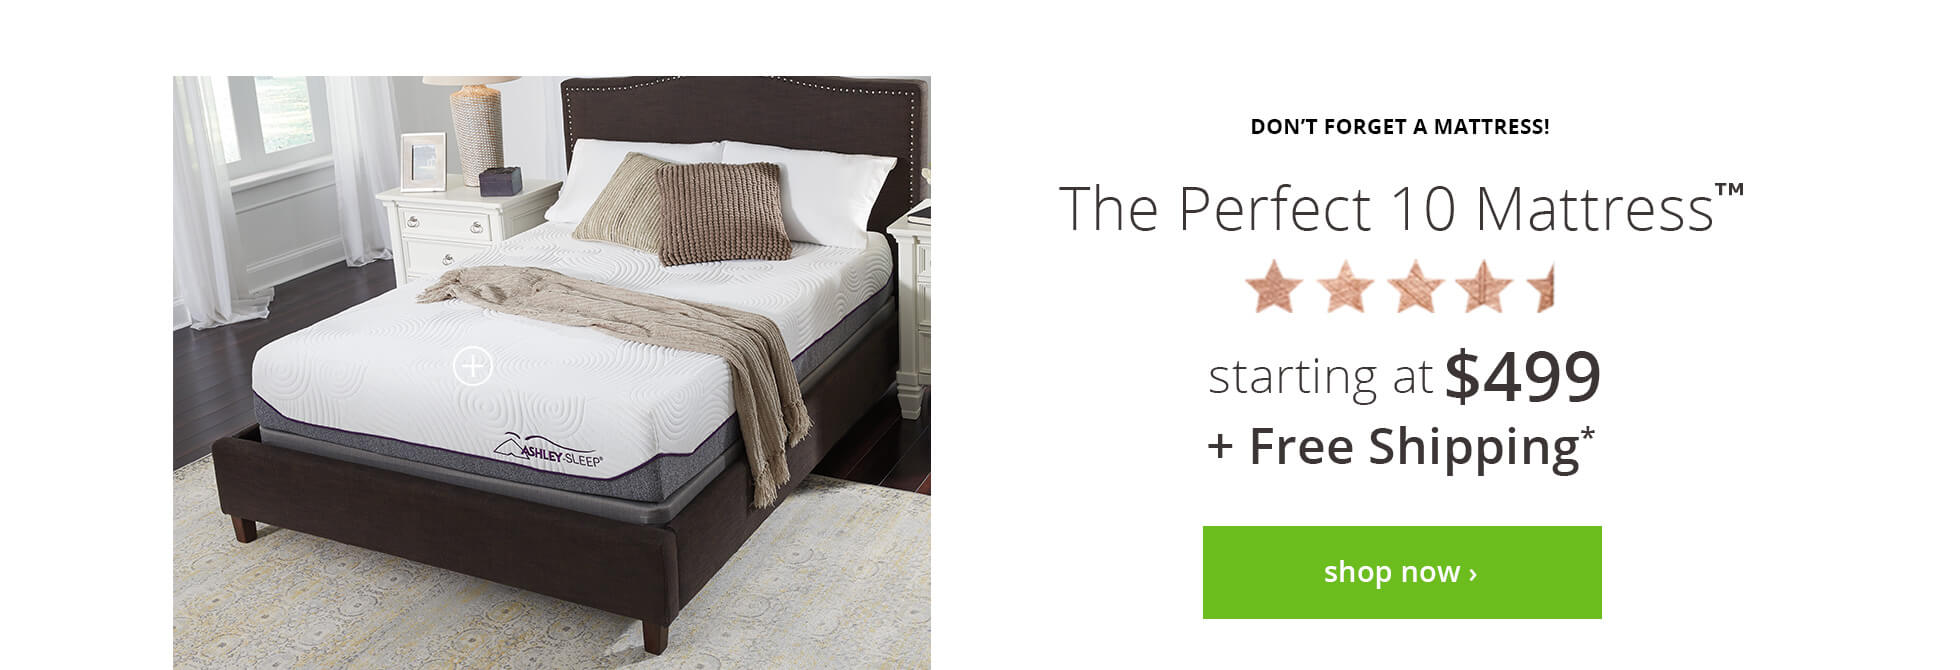 The Perfect 10 Mattress starting at $499